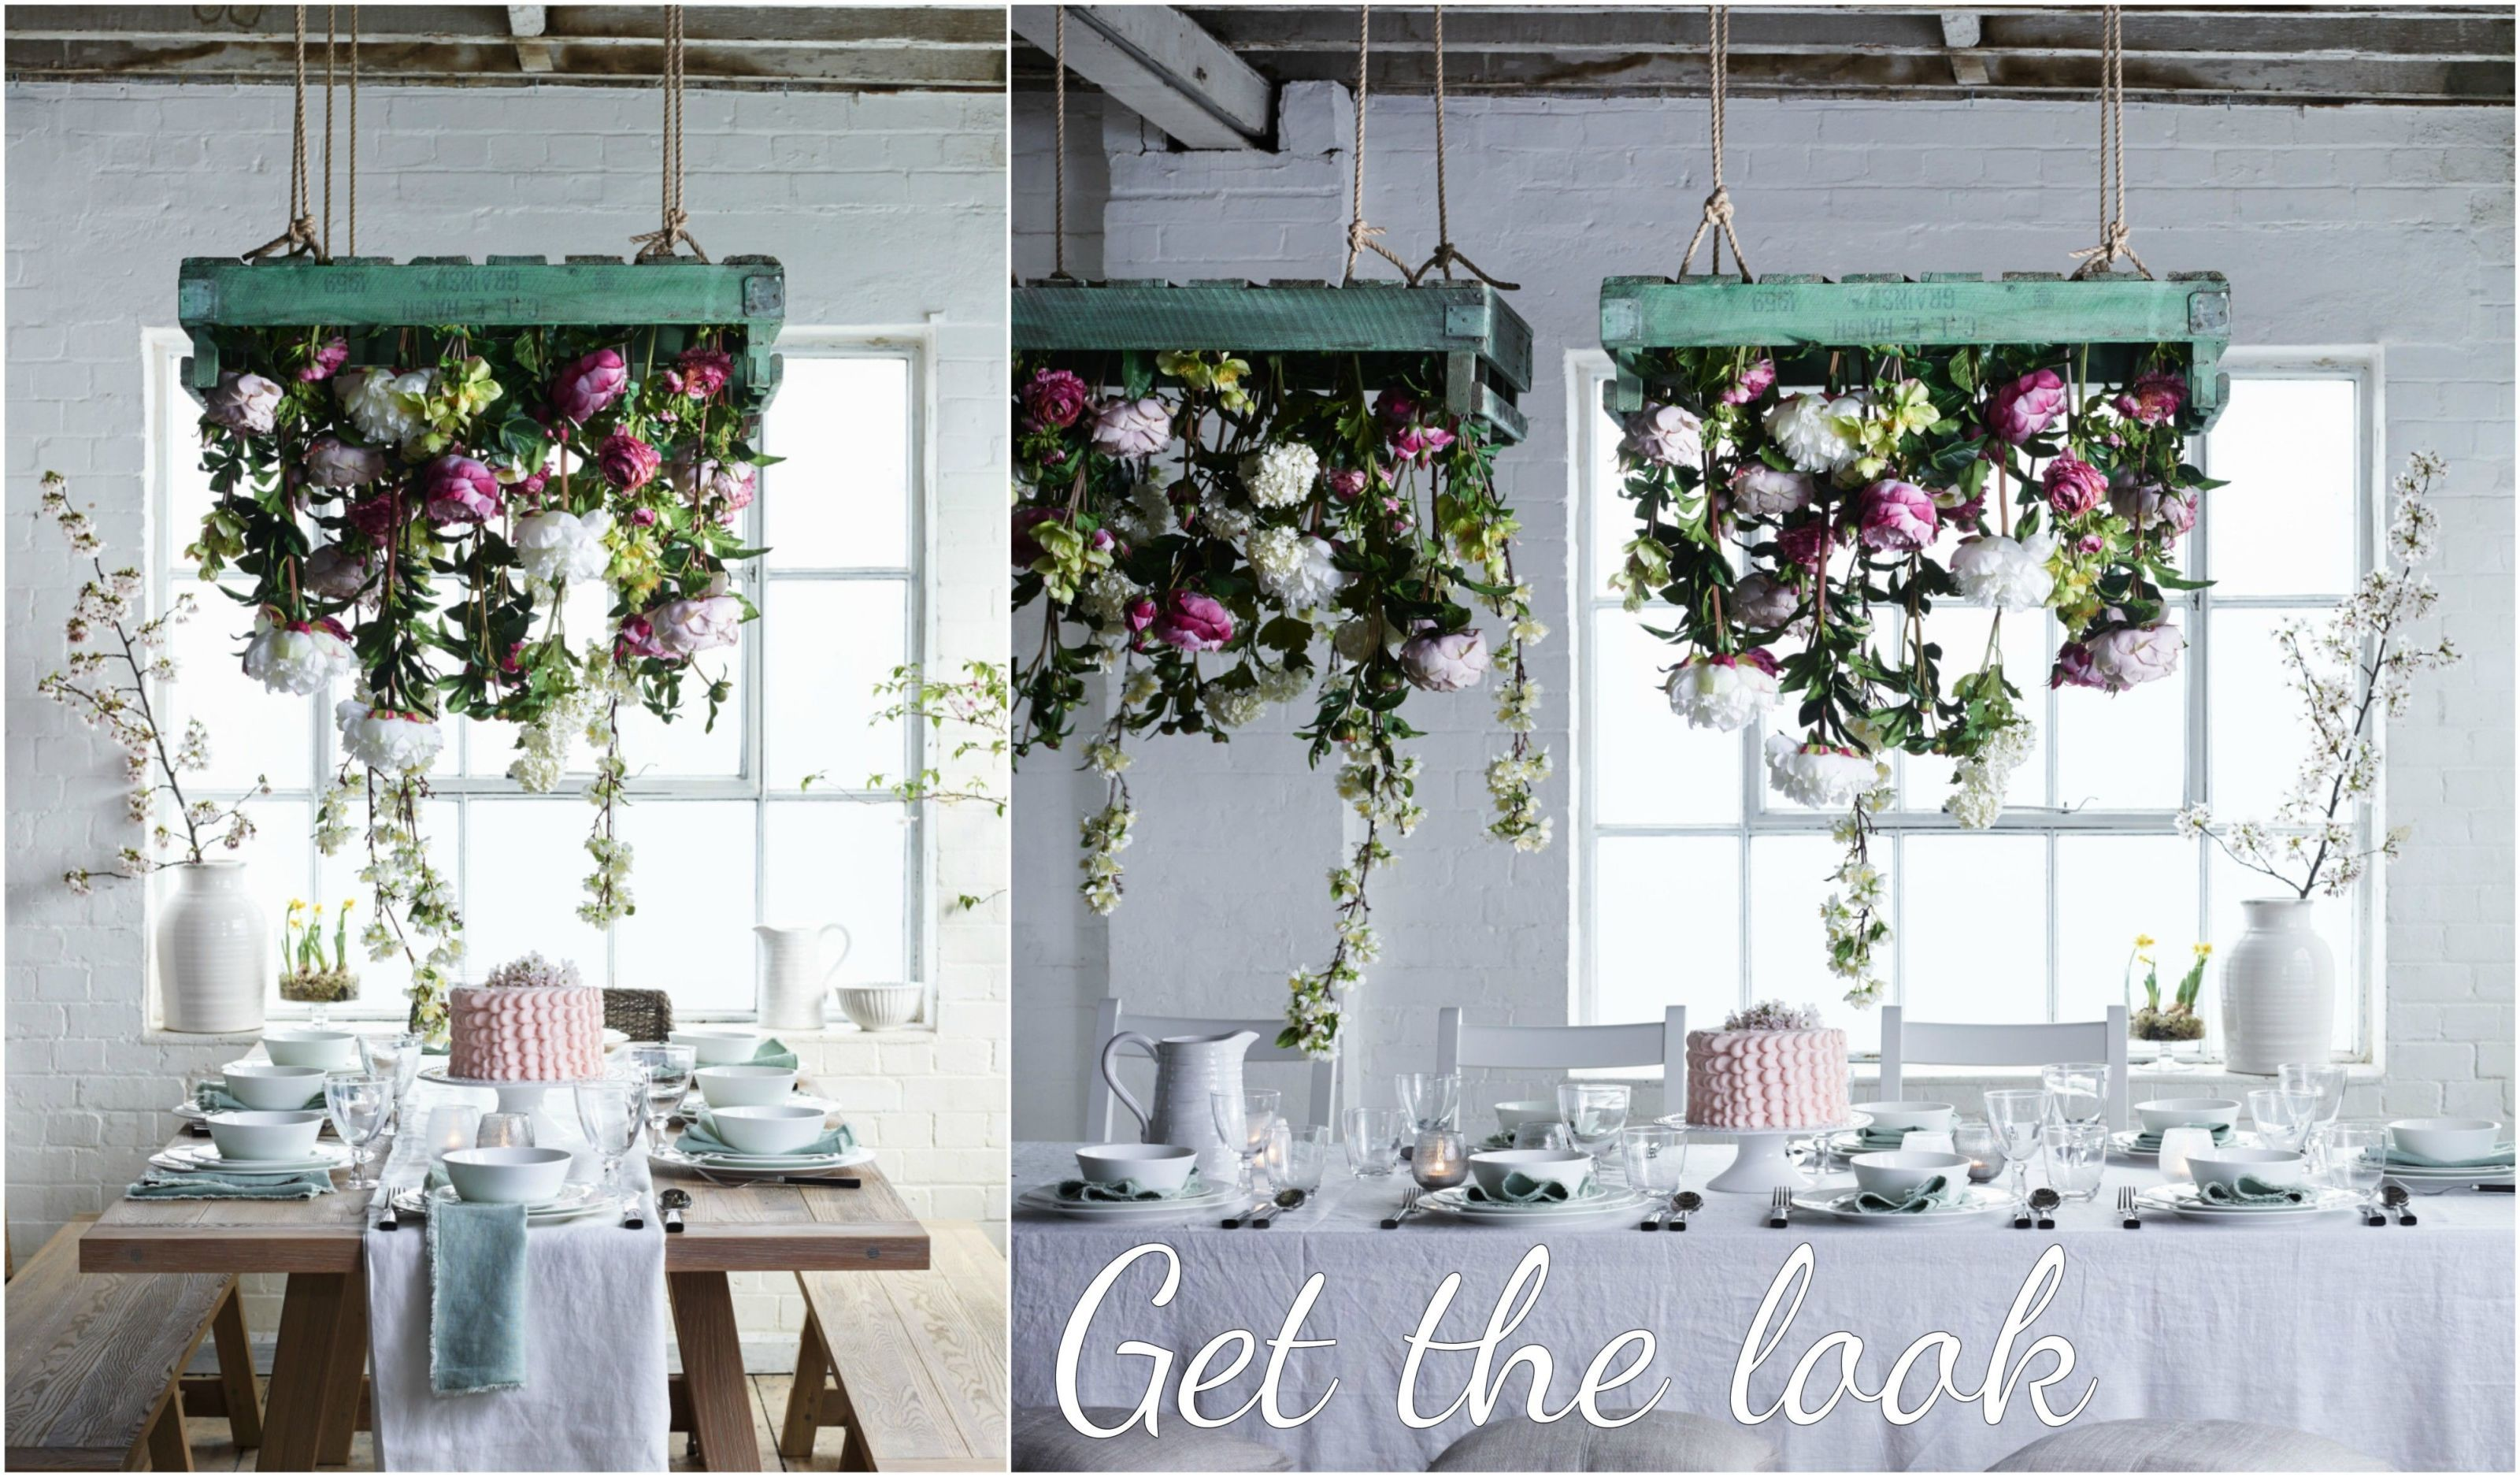 Neptune Arundel table and flower centrepiece & Hanging flower chandelier - floral DIY table centrepiece